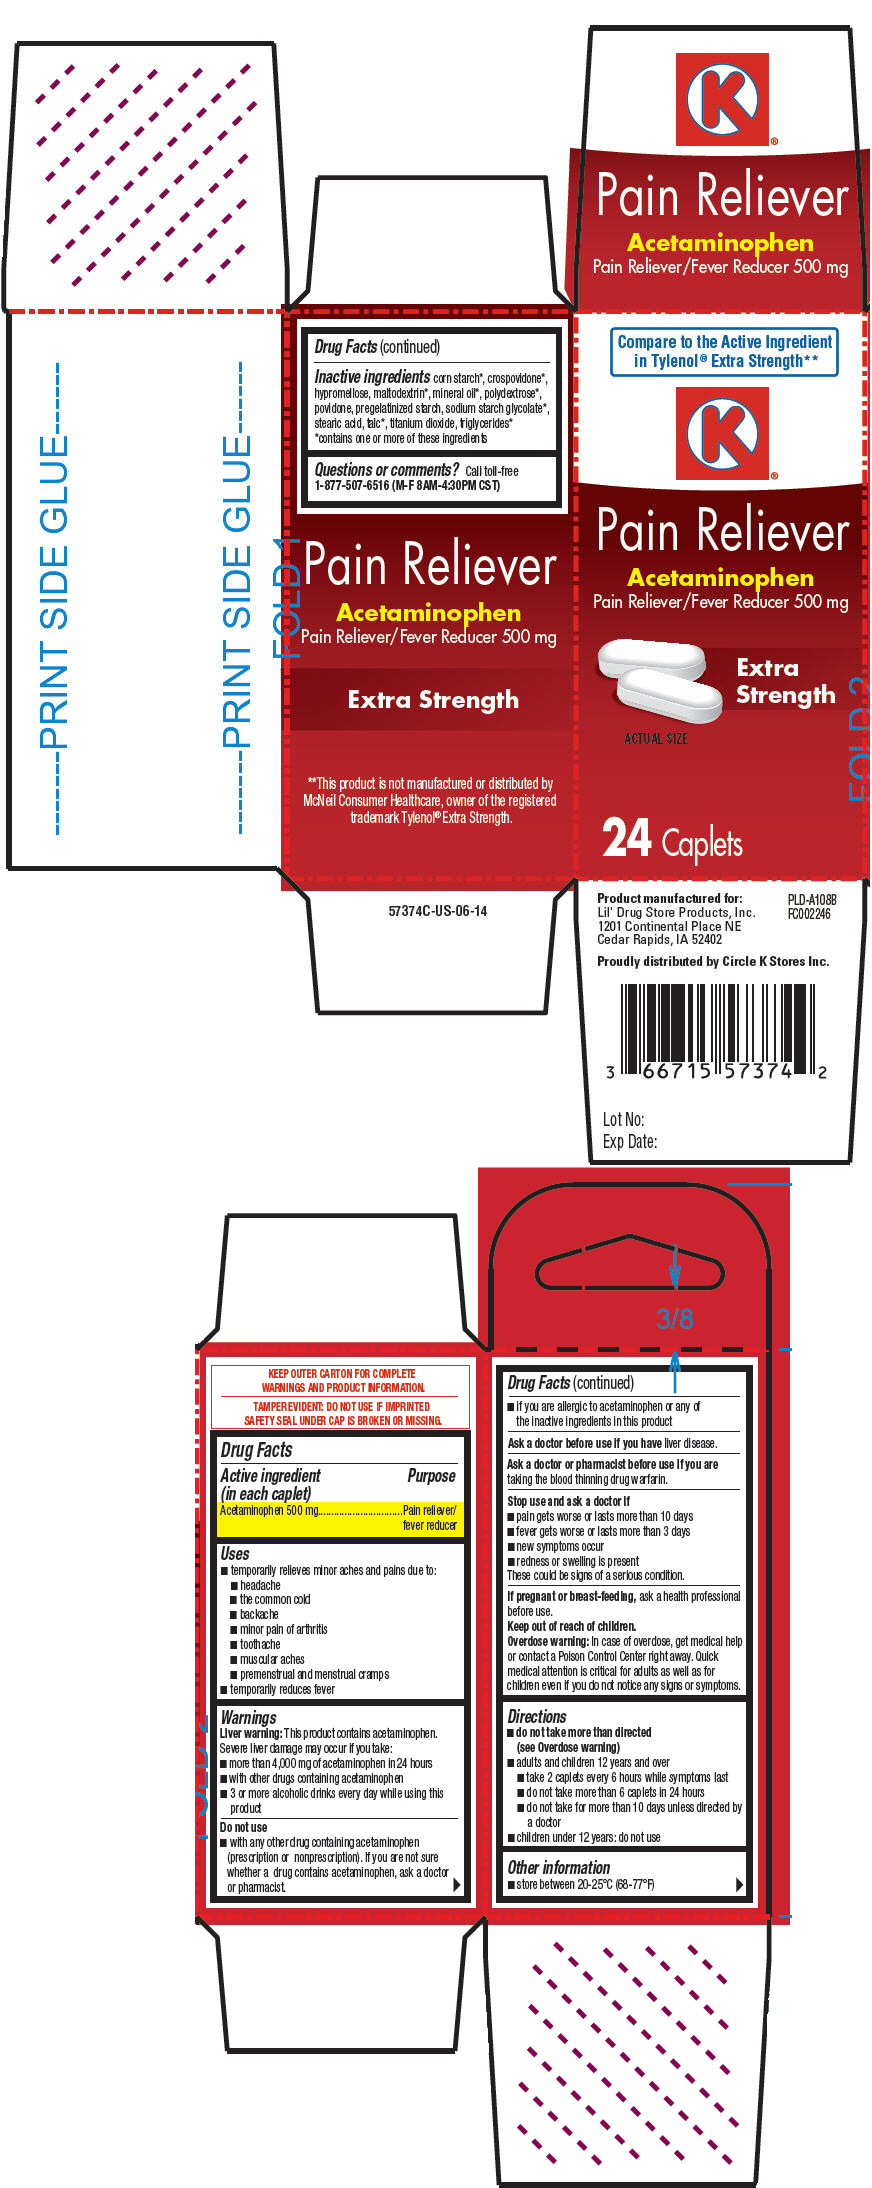 Acetaminophen (Circle K Pain Reliever)